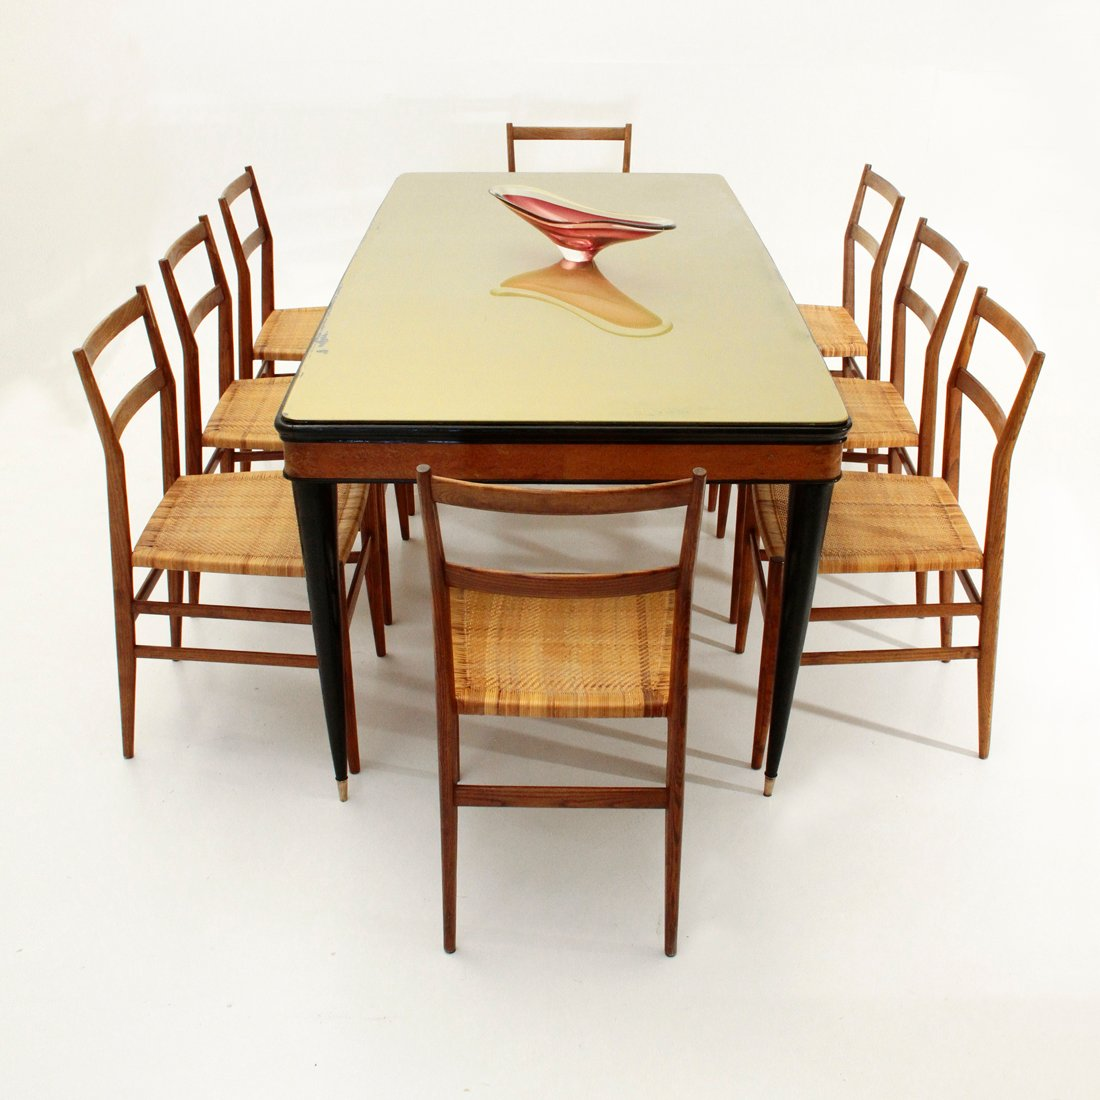 italian dining table with glass top 1950s for sale at pamono. Black Bedroom Furniture Sets. Home Design Ideas